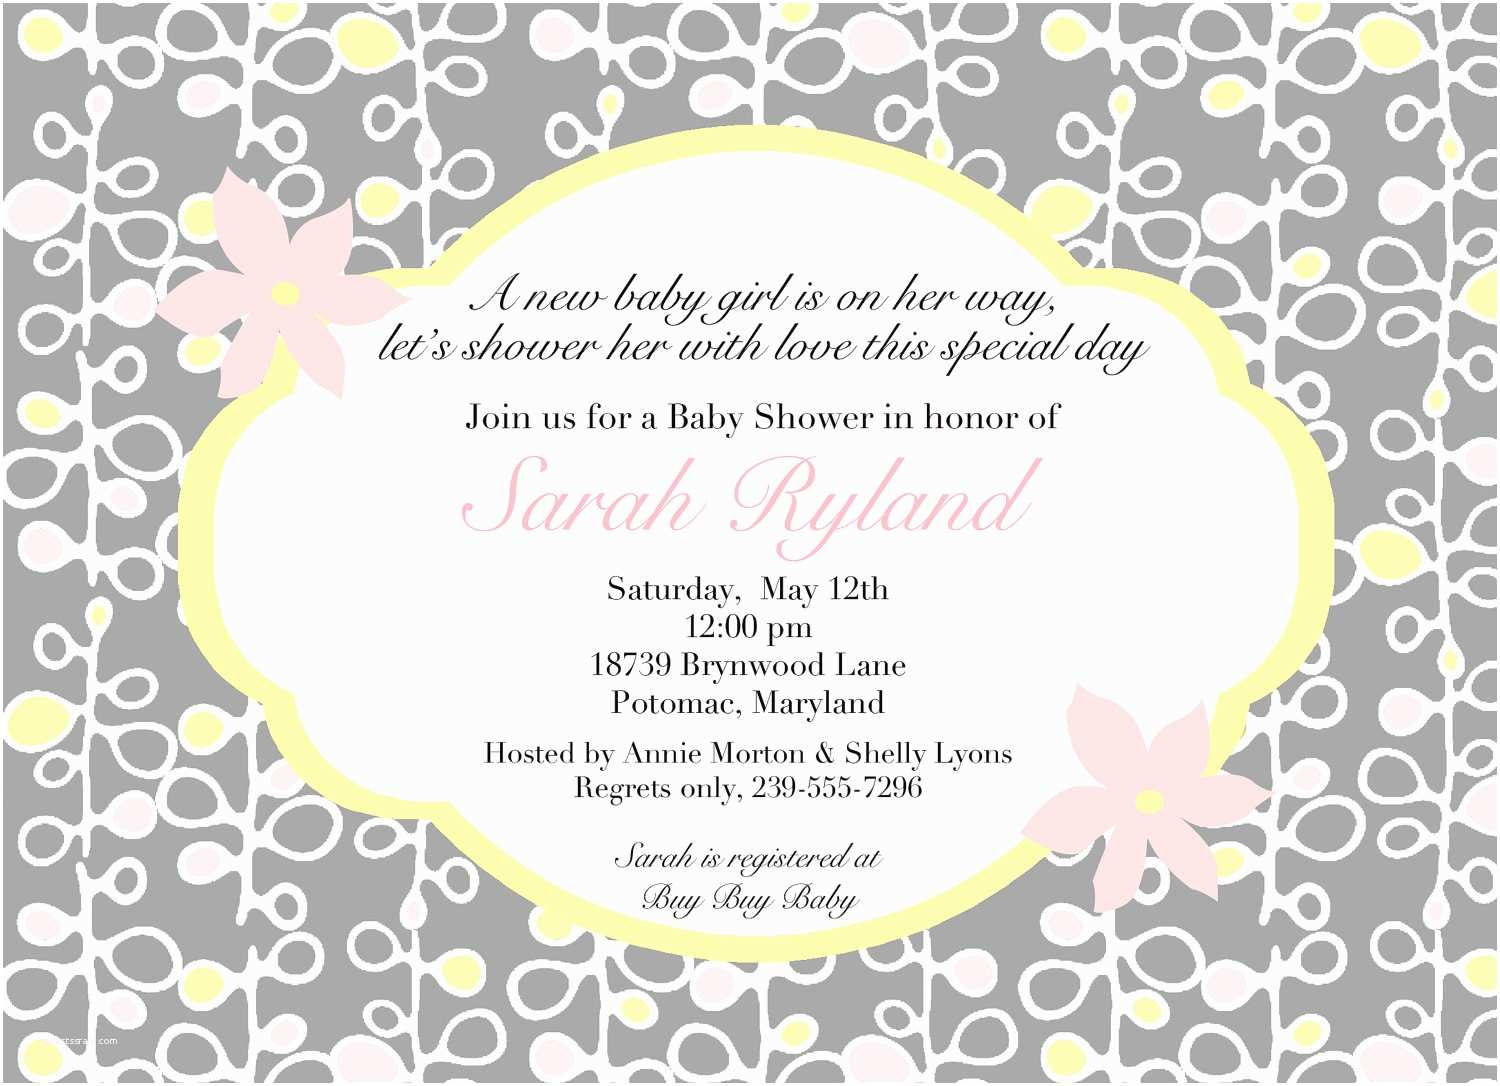 Baby Shower Invitation Message Wording for Baby Shower Invitations asking for Gift Cards